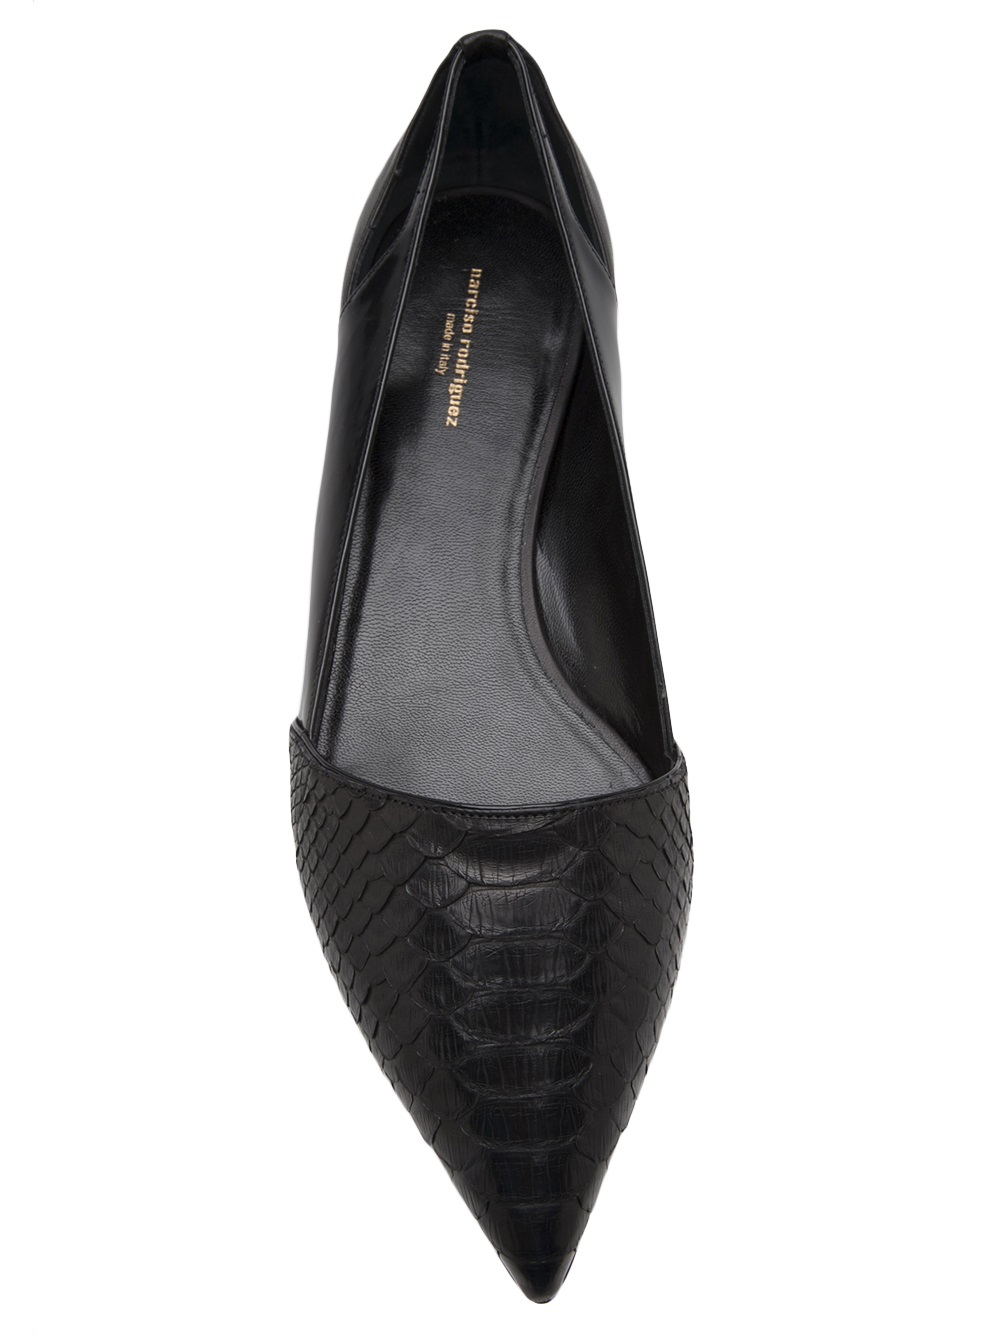 Narciso Rodriguez Pointed Toe Flat In Black Lyst